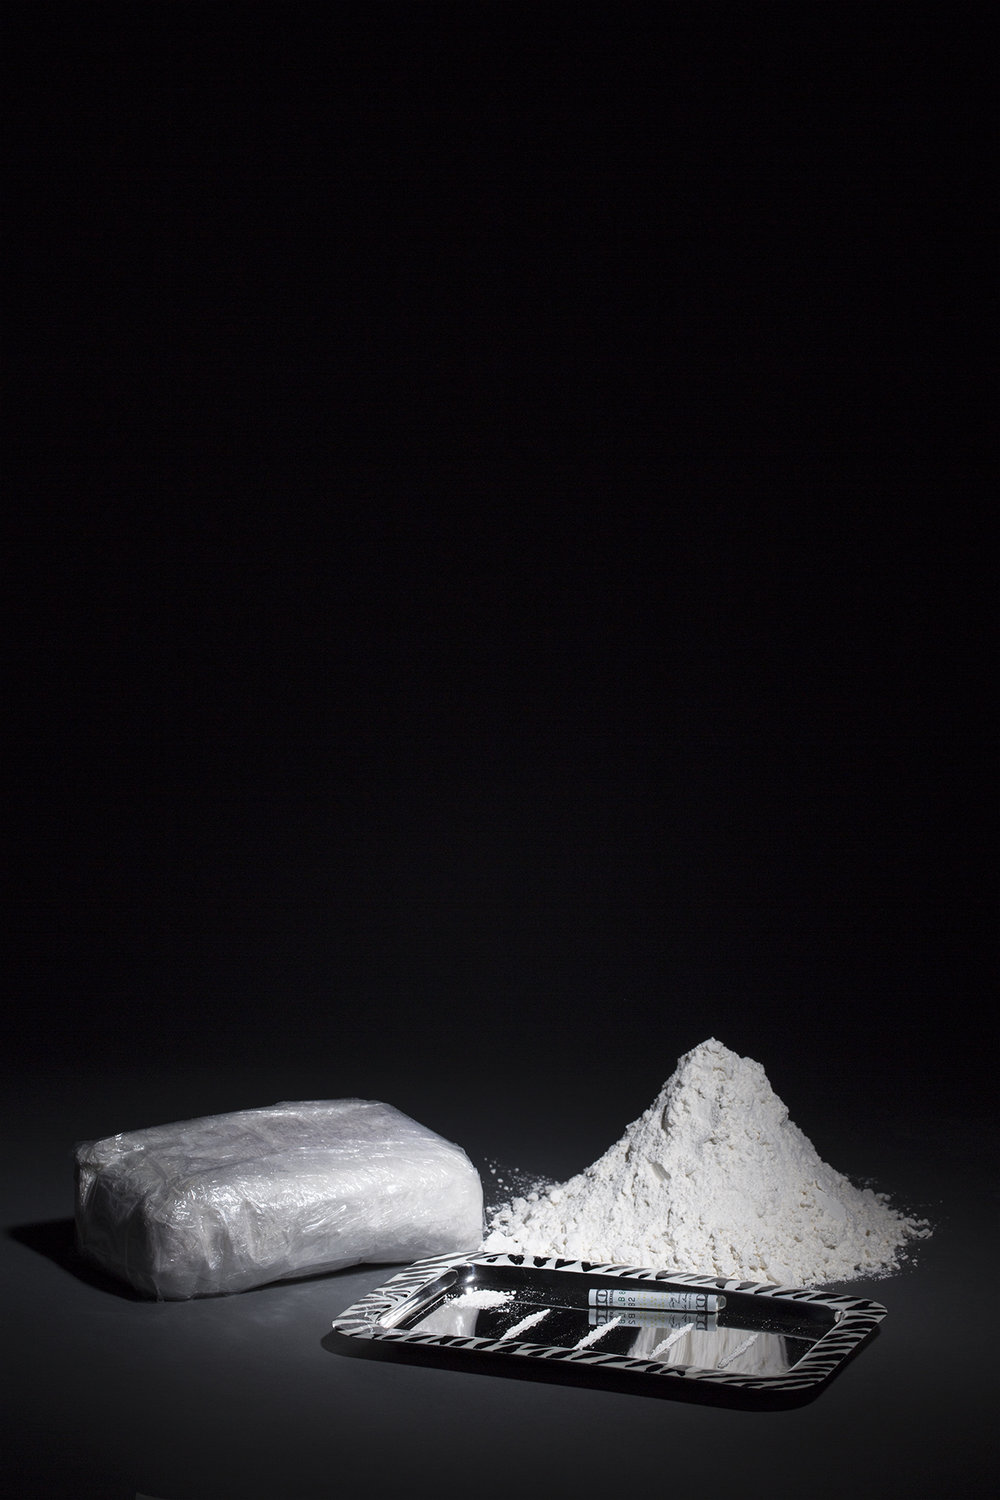 CocaineStilllife.jpg